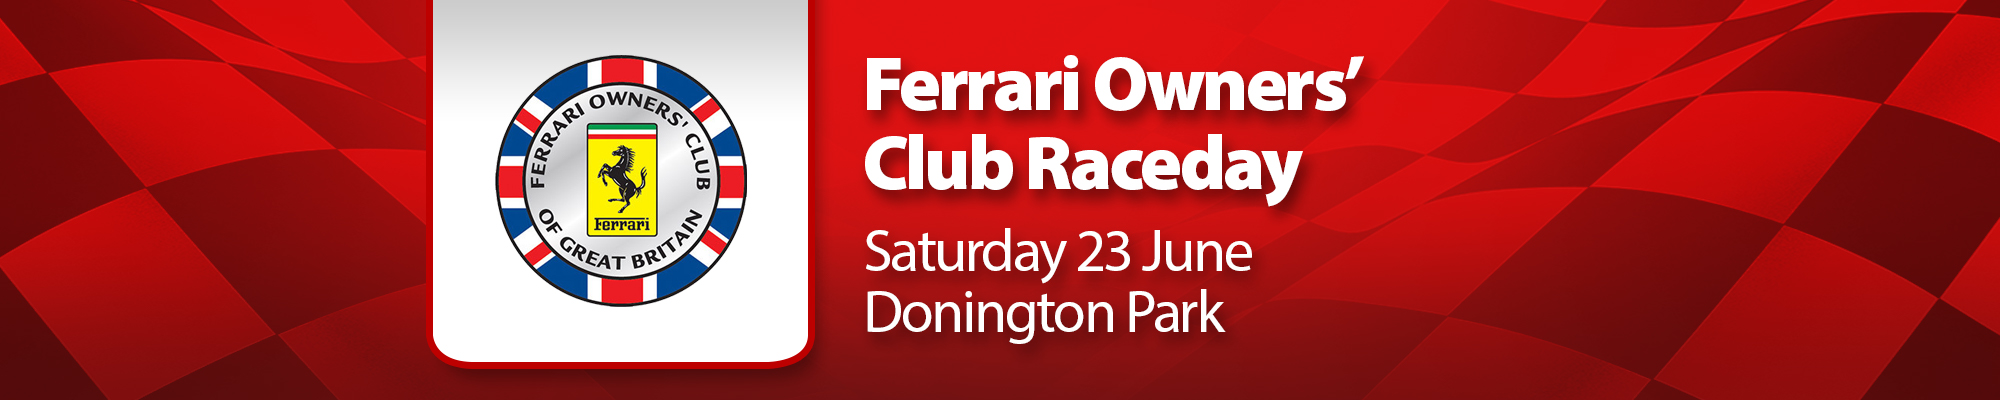 Ferrari Owners Club Race Day